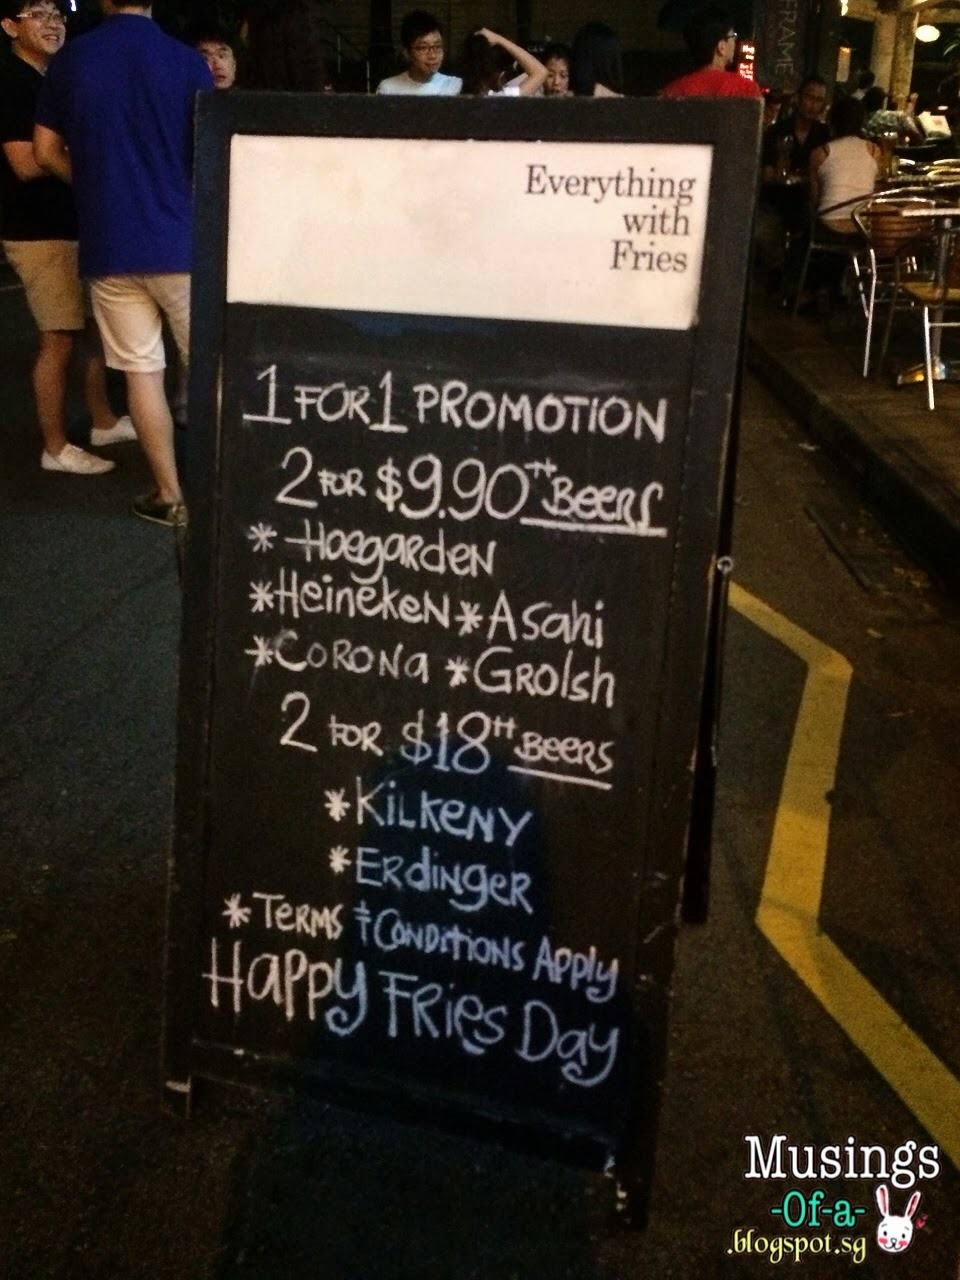 1 for 1 Beer Promotion